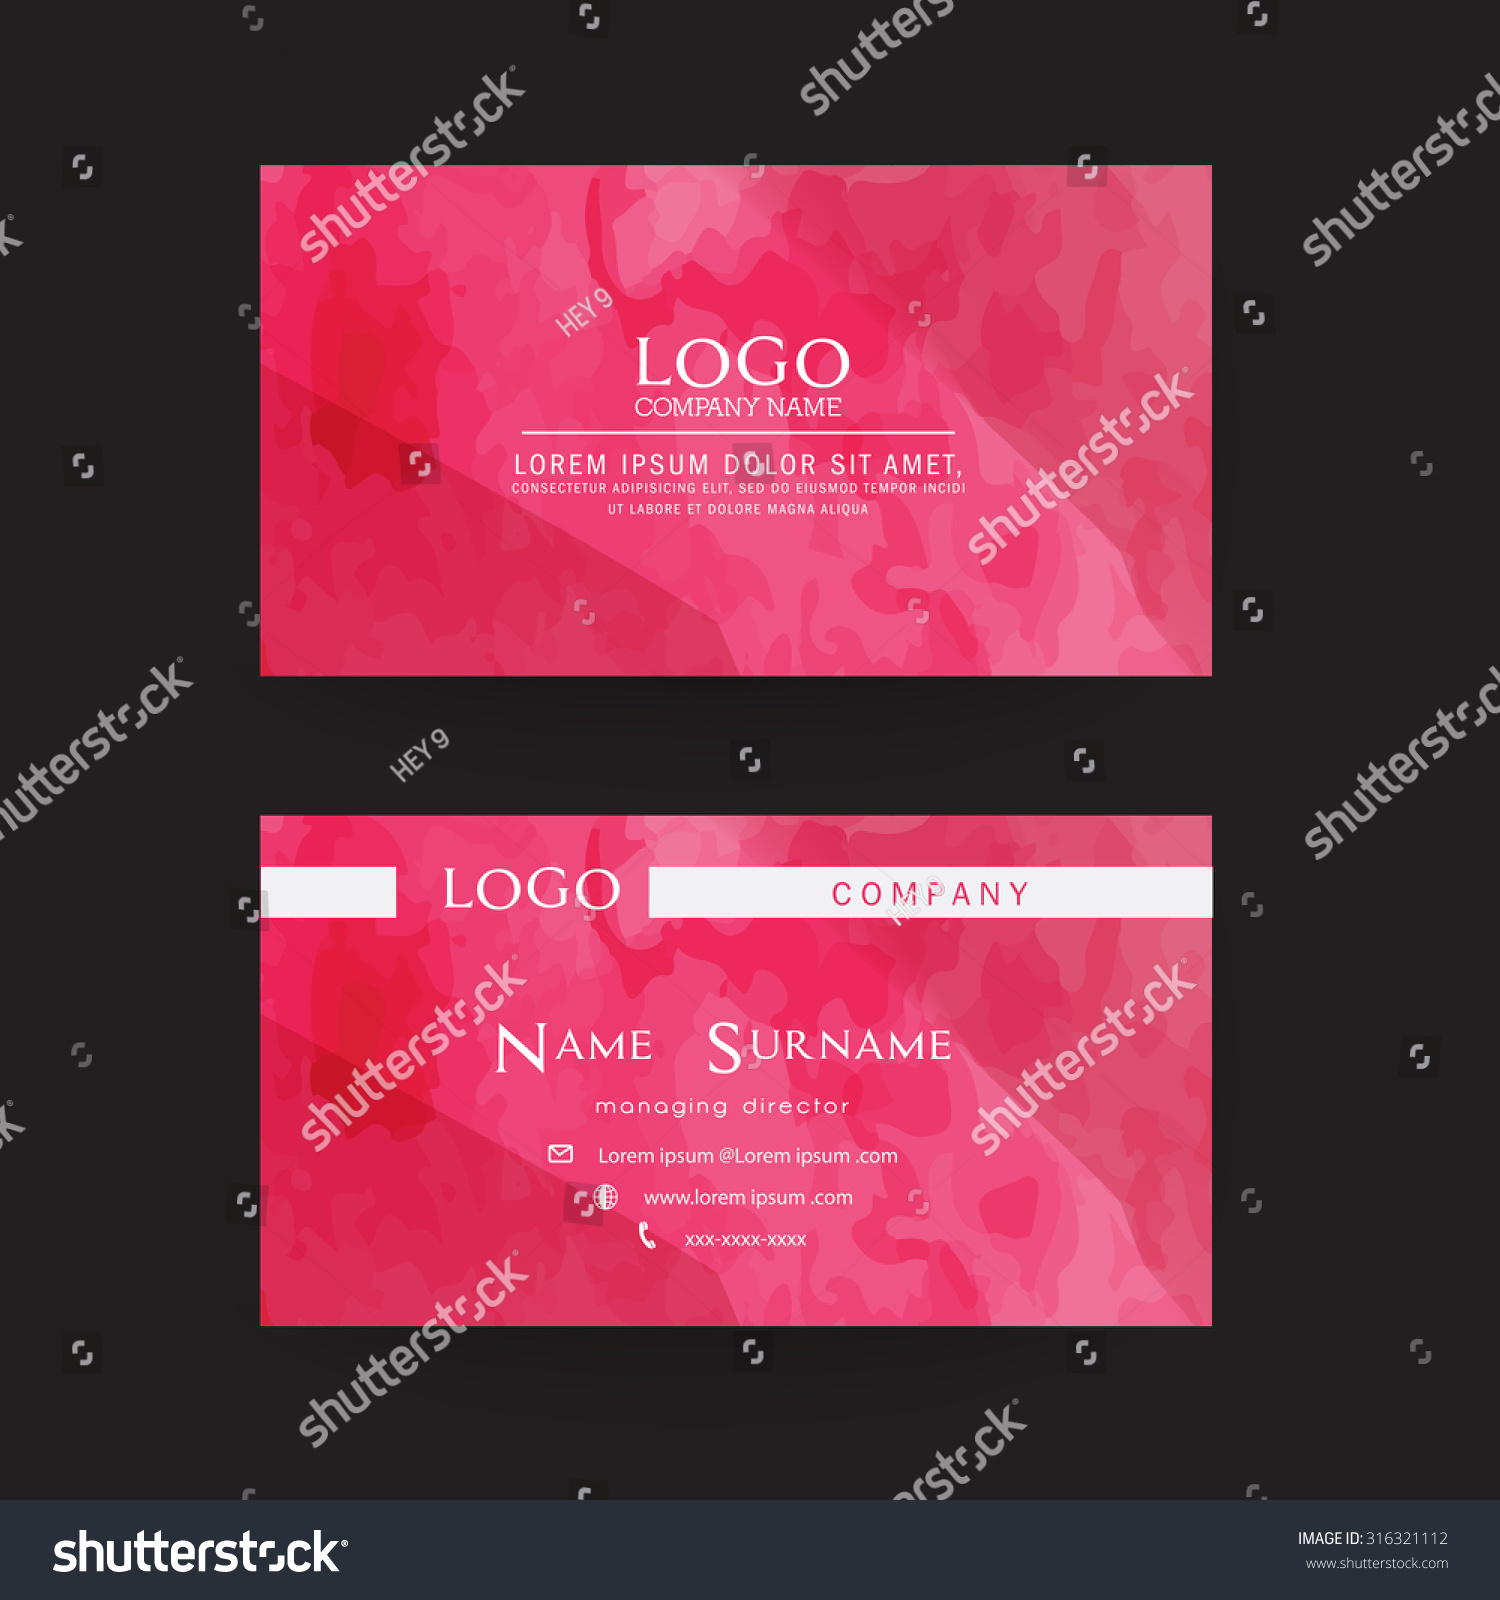 Business Card Templatewatercolor Styles High Quality Stock Vector ...